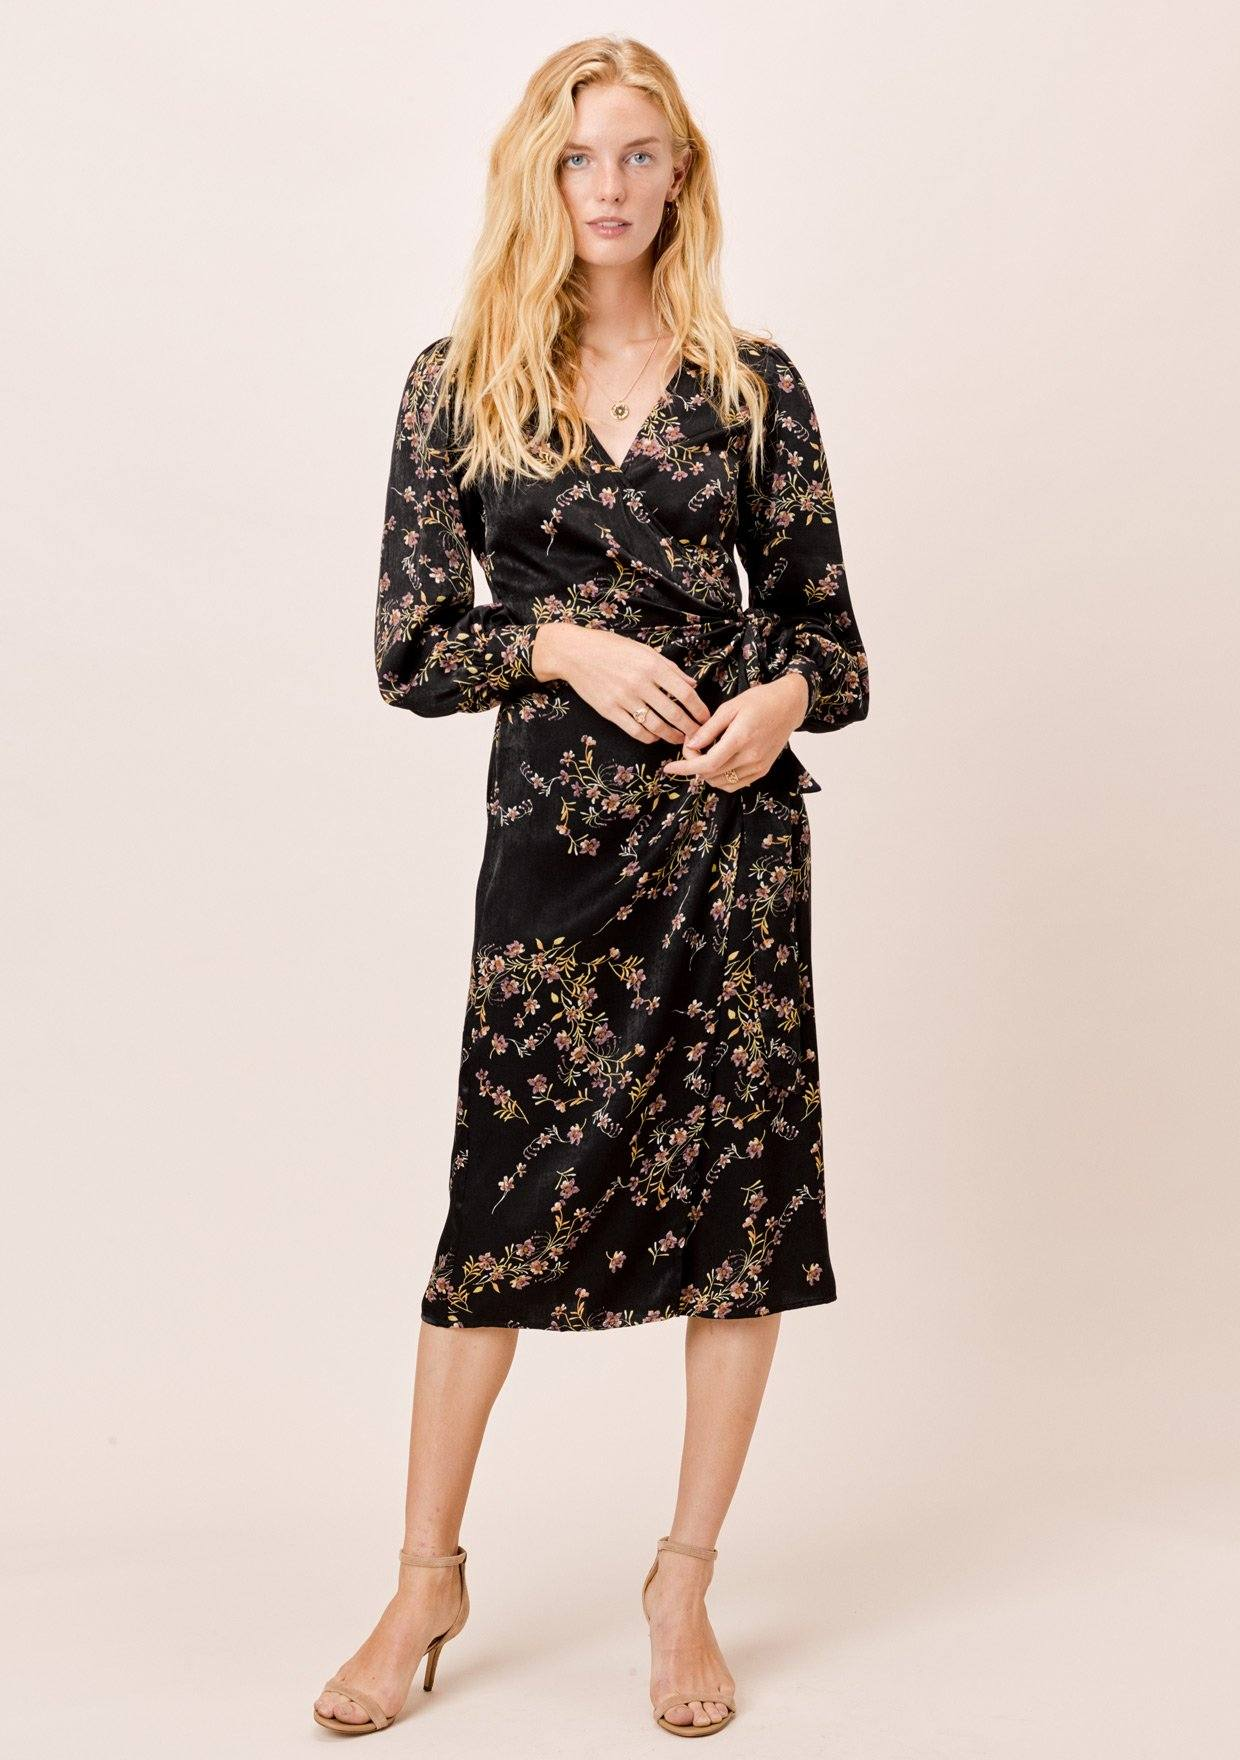 [Color: Black] Lovestitch Black, long sleeve, botanical floral midi wrap dress